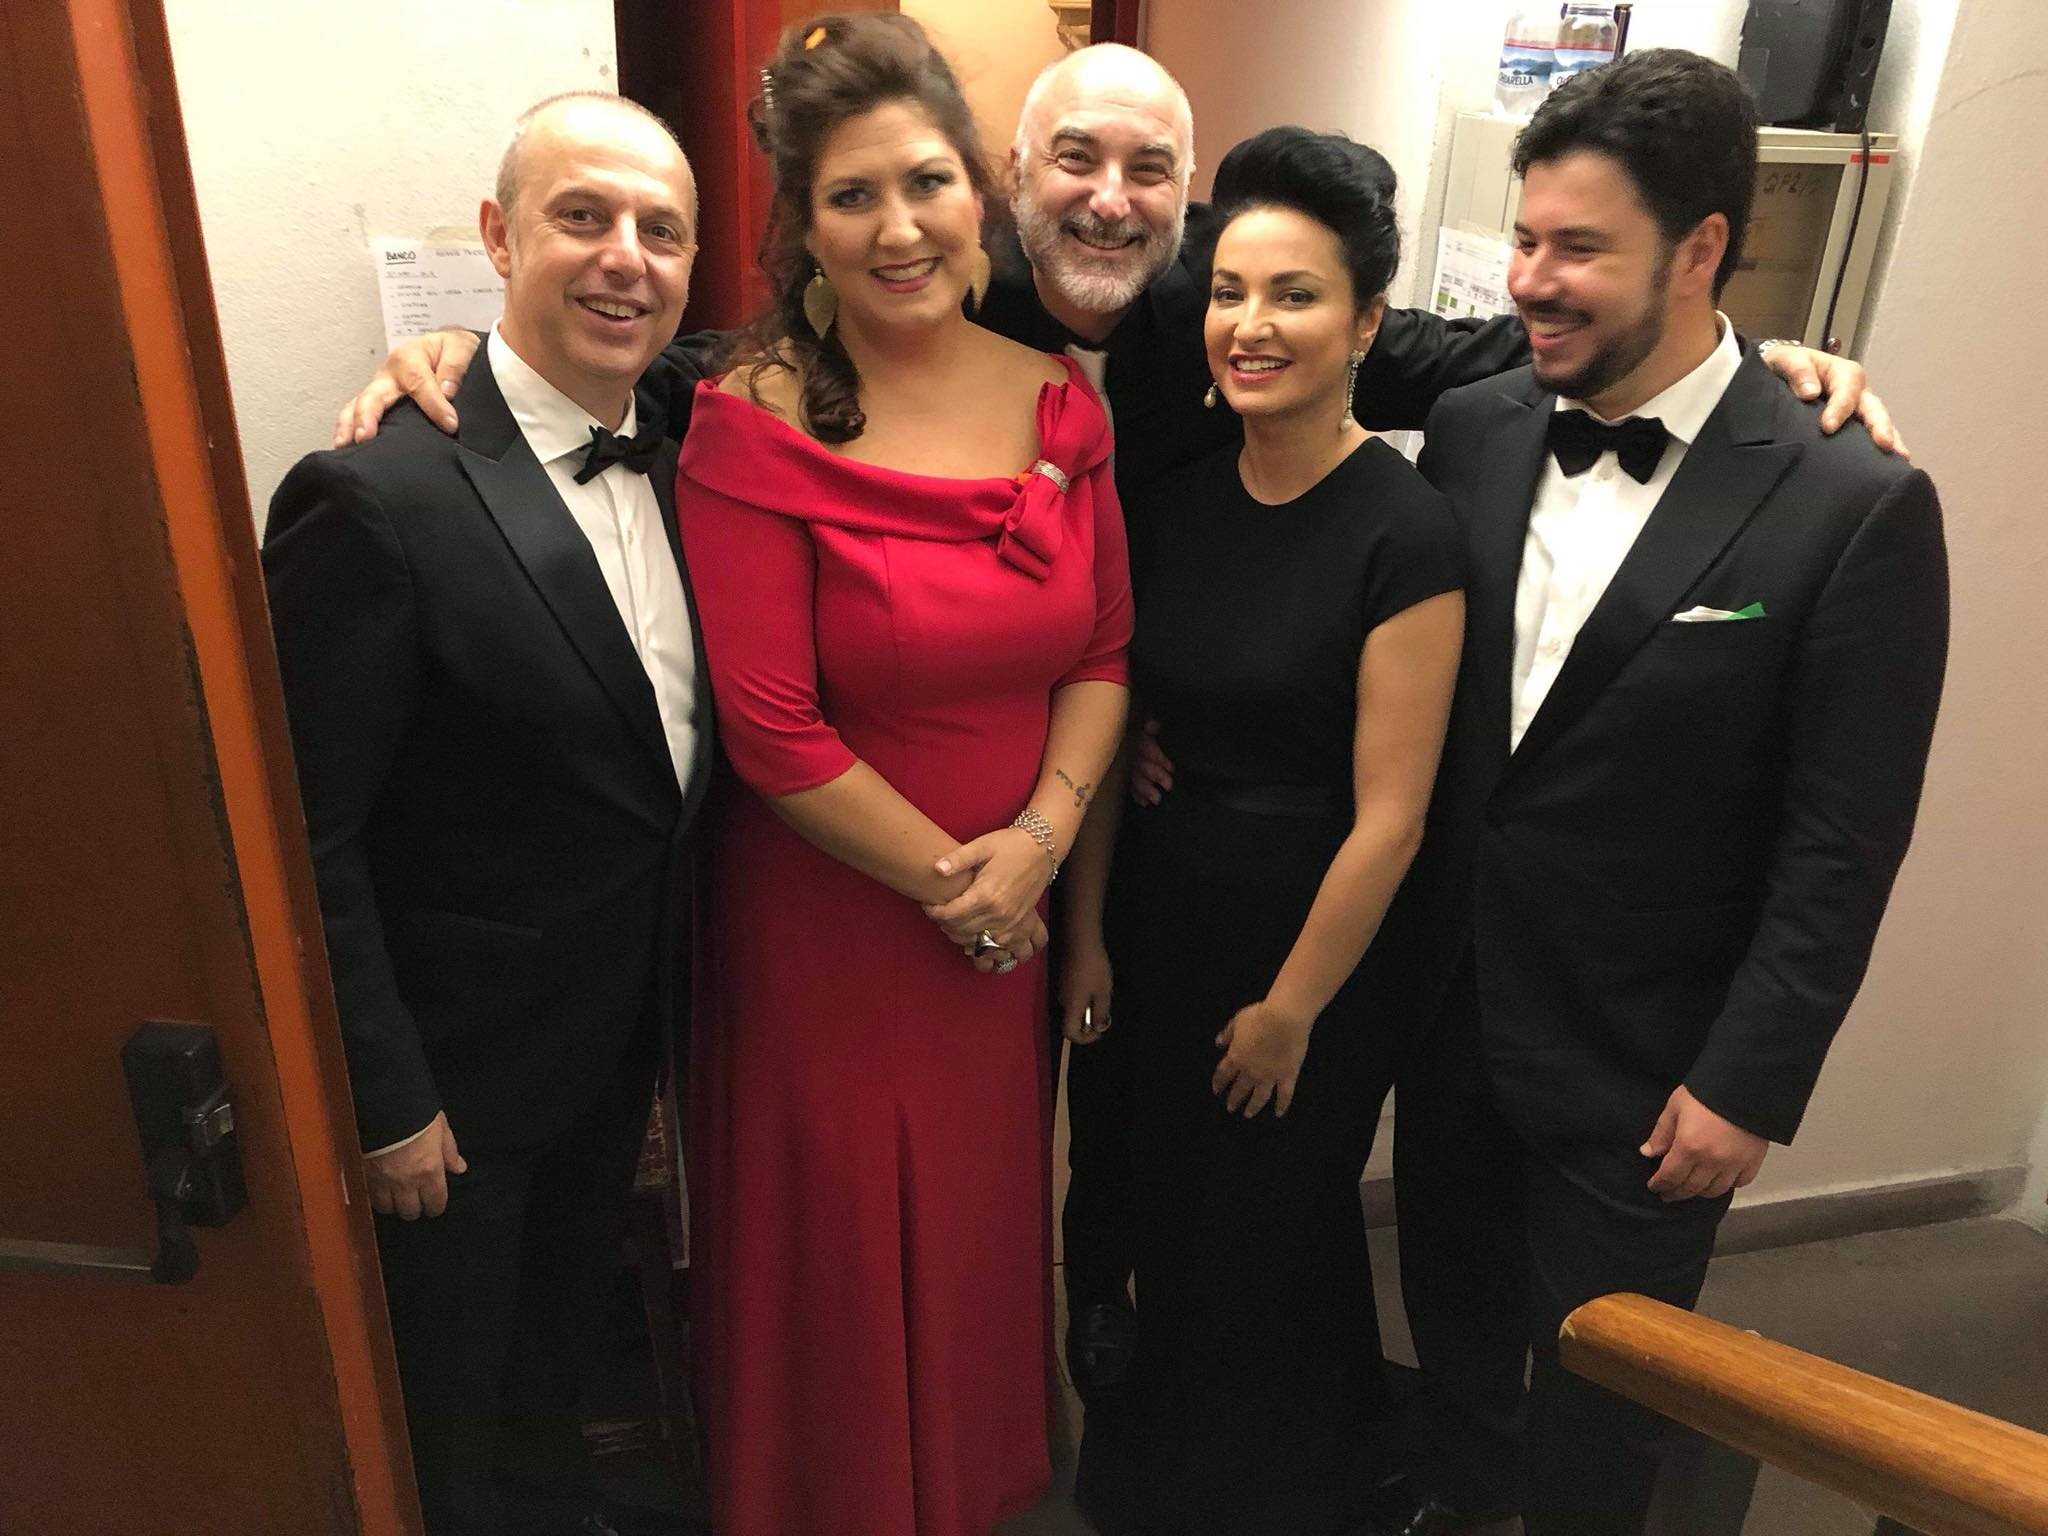 Nino Surguladze at Verdi Festival with Anna Pirozzi